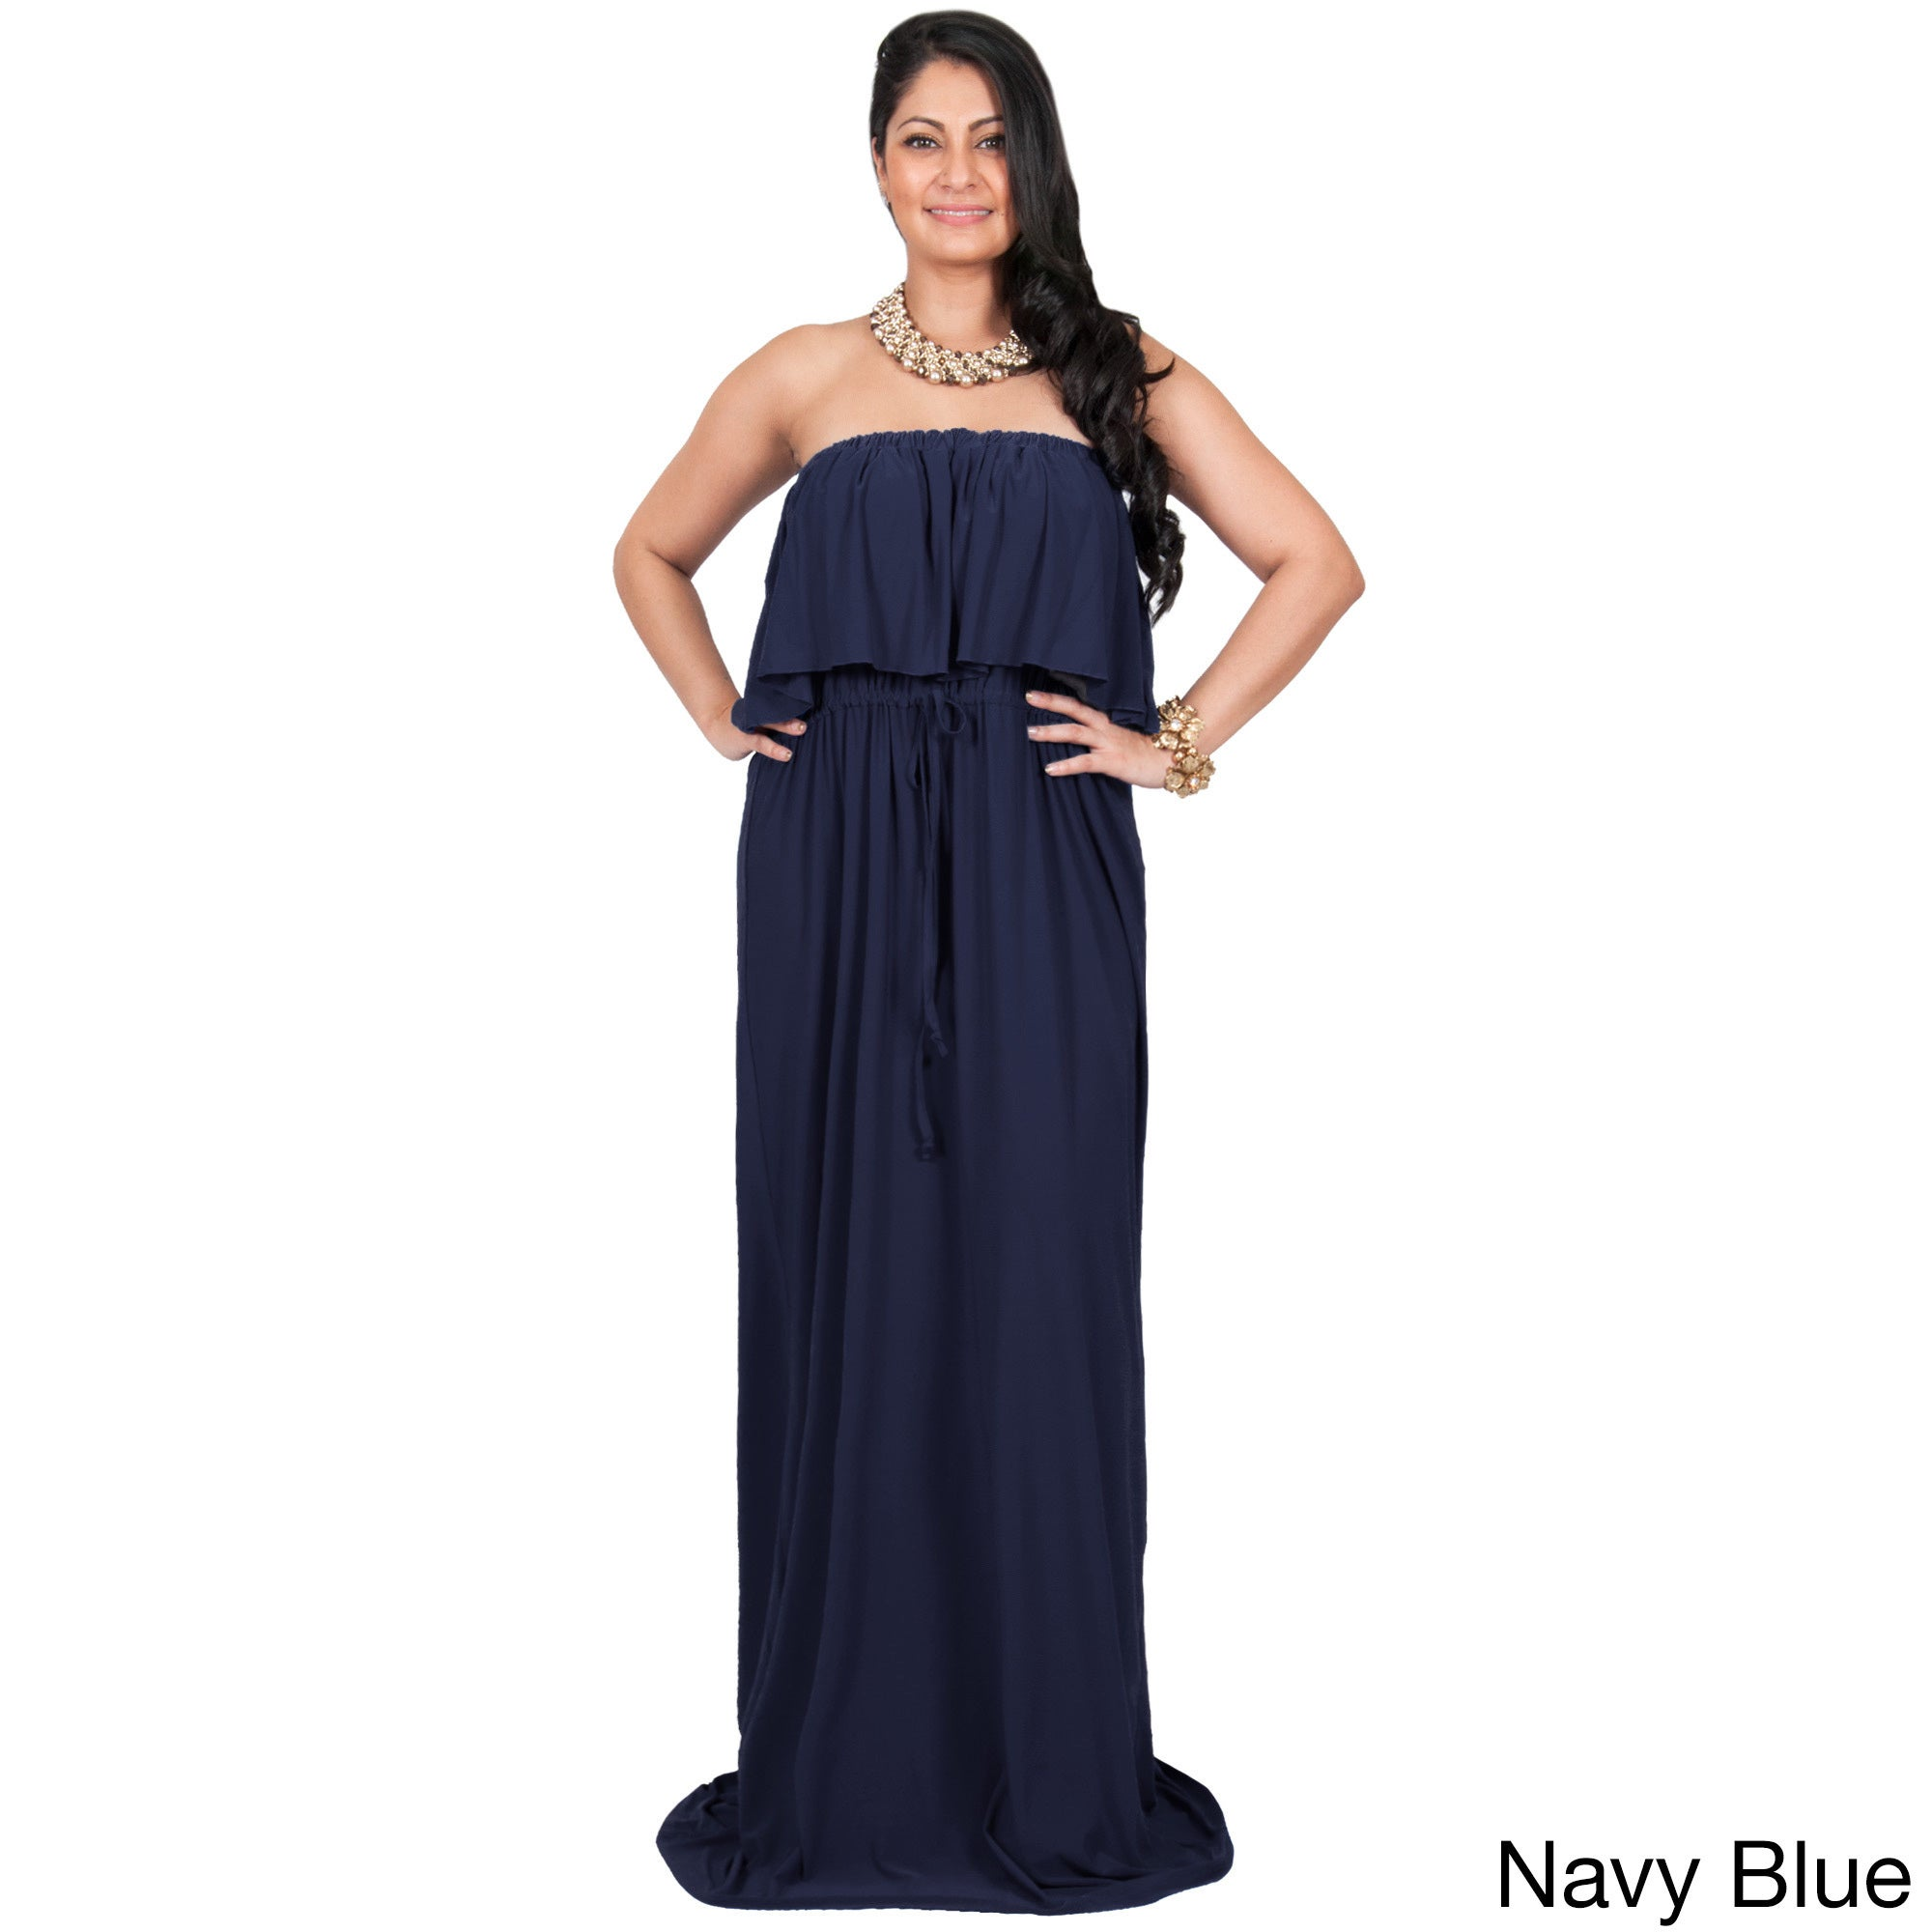 Details about KOH KOH Womens Plus Size Strapless Summer Flattering Maxi  Dress